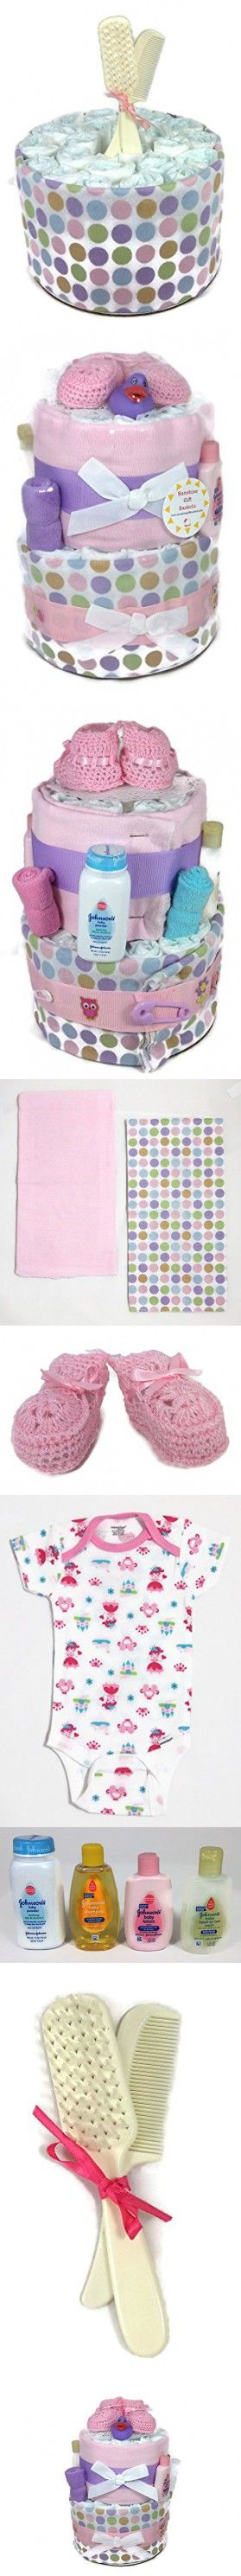 Sunshine Gift Baskets - Pink Diaper Cake Gift Set with Pink Booties